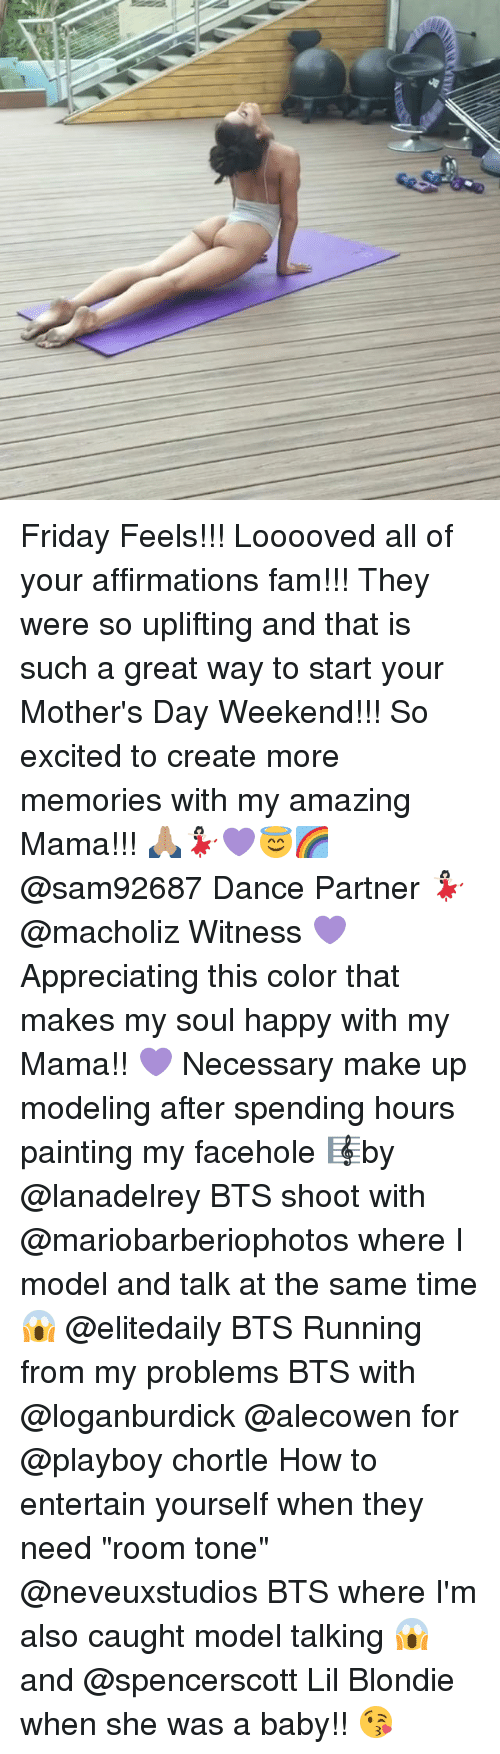 """Fam, Friday, and Memes: Friday Feels!!! Looooved all of your affirmations fam!!! They were so uplifting and that is such a great way to start your Mother's Day Weekend!!! So excited to create more memories with my amazing Mama!!! 🙏🏽💃🏻💜😇🌈 @sam92687 Dance Partner 💃🏻 @macholiz Witness 💜Appreciating this color that makes my soul happy with my Mama!! 💜 Necessary make up modeling after spending hours painting my facehole 🎼by @lanadelrey BTS shoot with @mariobarberiophotos where I model and talk at the same time 😱 @elitedaily BTS Running from my problems BTS with @loganburdick @alecowen for @playboy chortle How to entertain yourself when they need """"room tone"""" @neveuxstudios BTS where I'm also caught model talking 😱 and @spencerscott Lil Blondie when she was a baby!! 😘"""